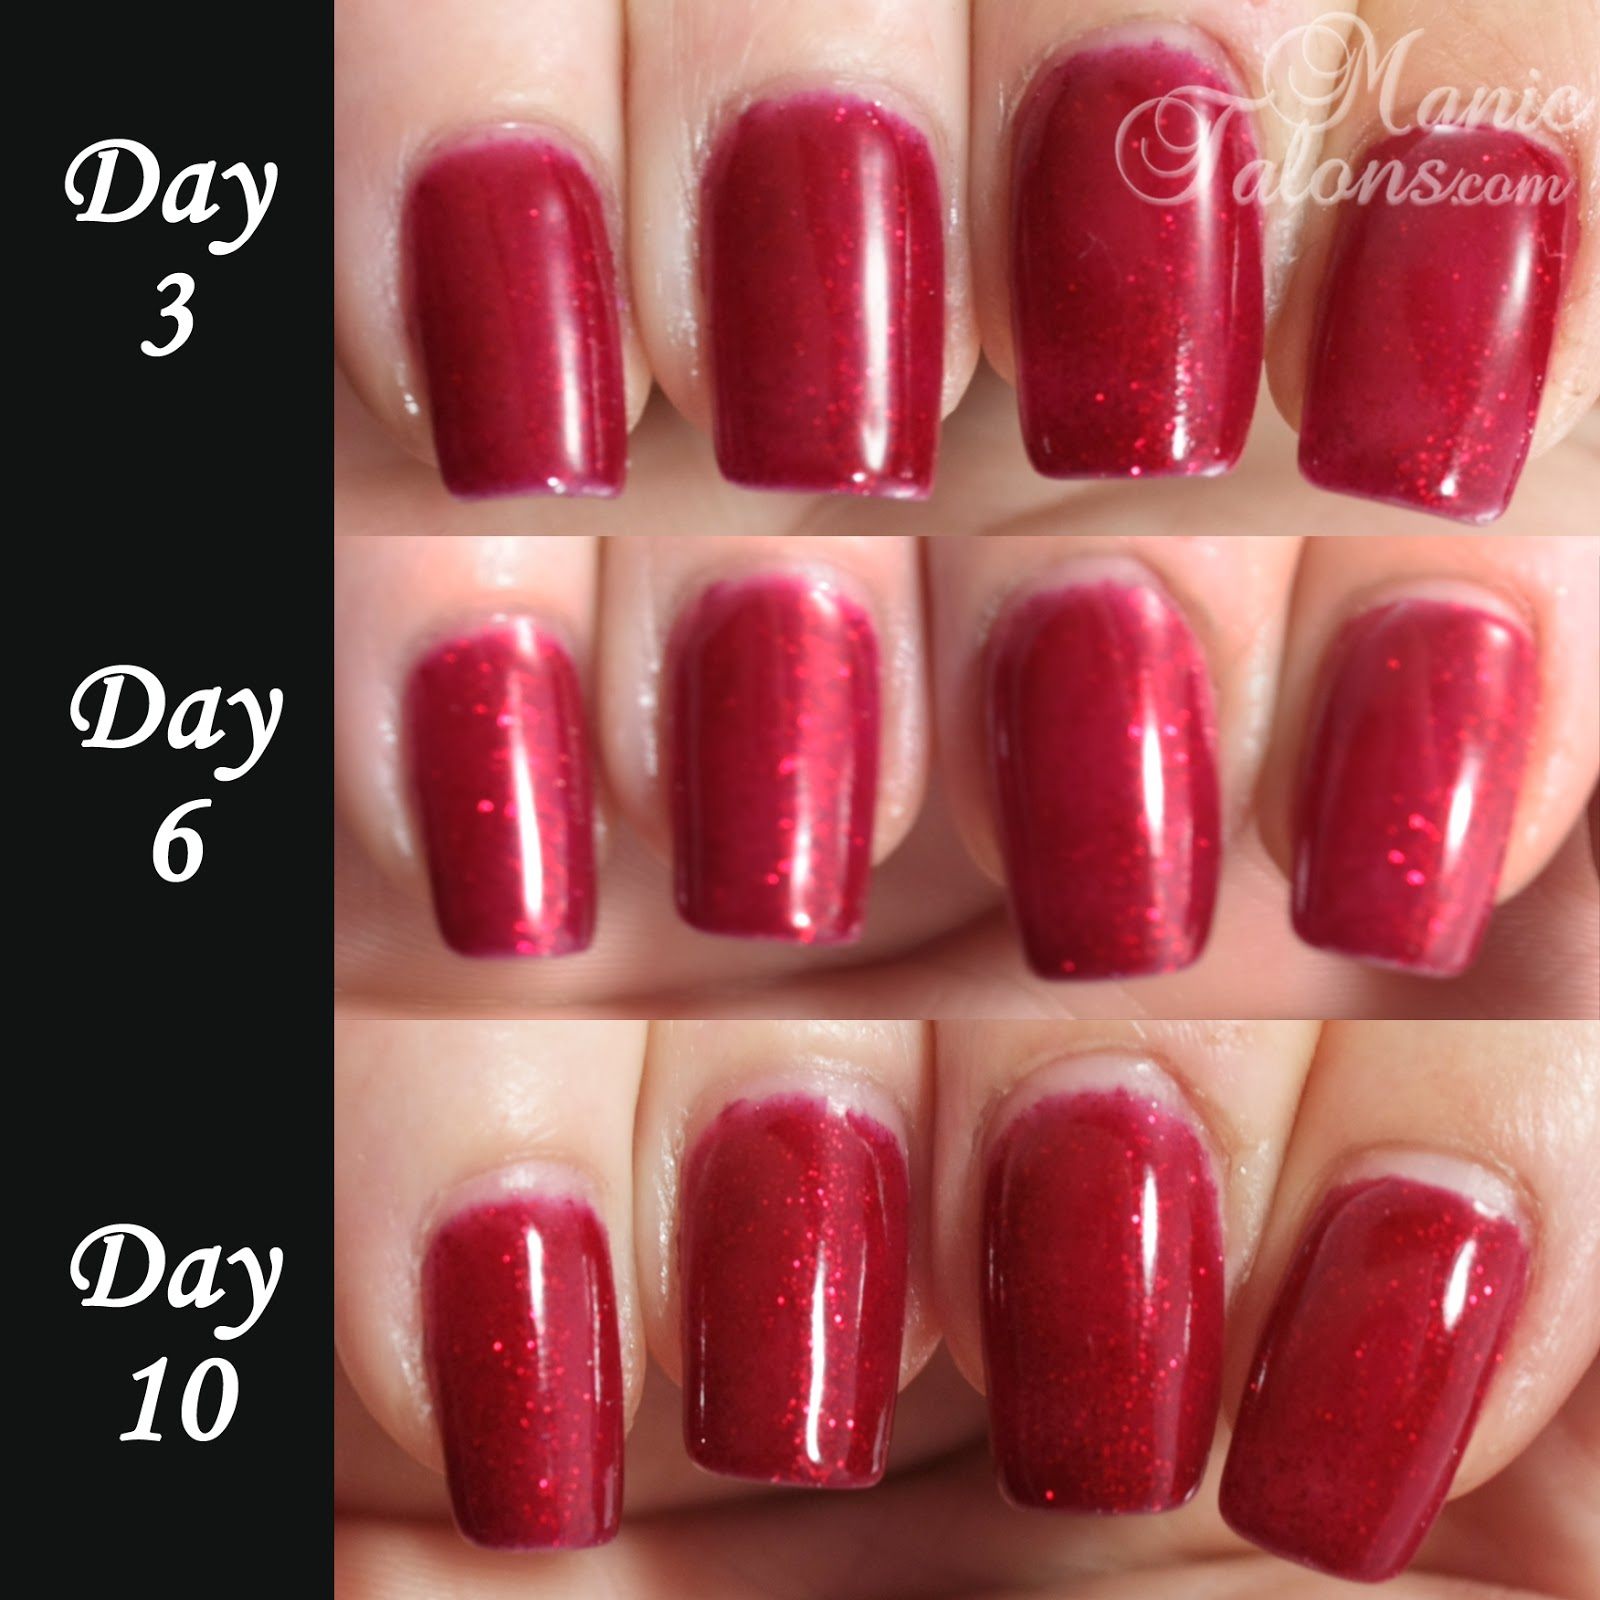 Gelaze by China Glaze 10 Day Wear Test Results